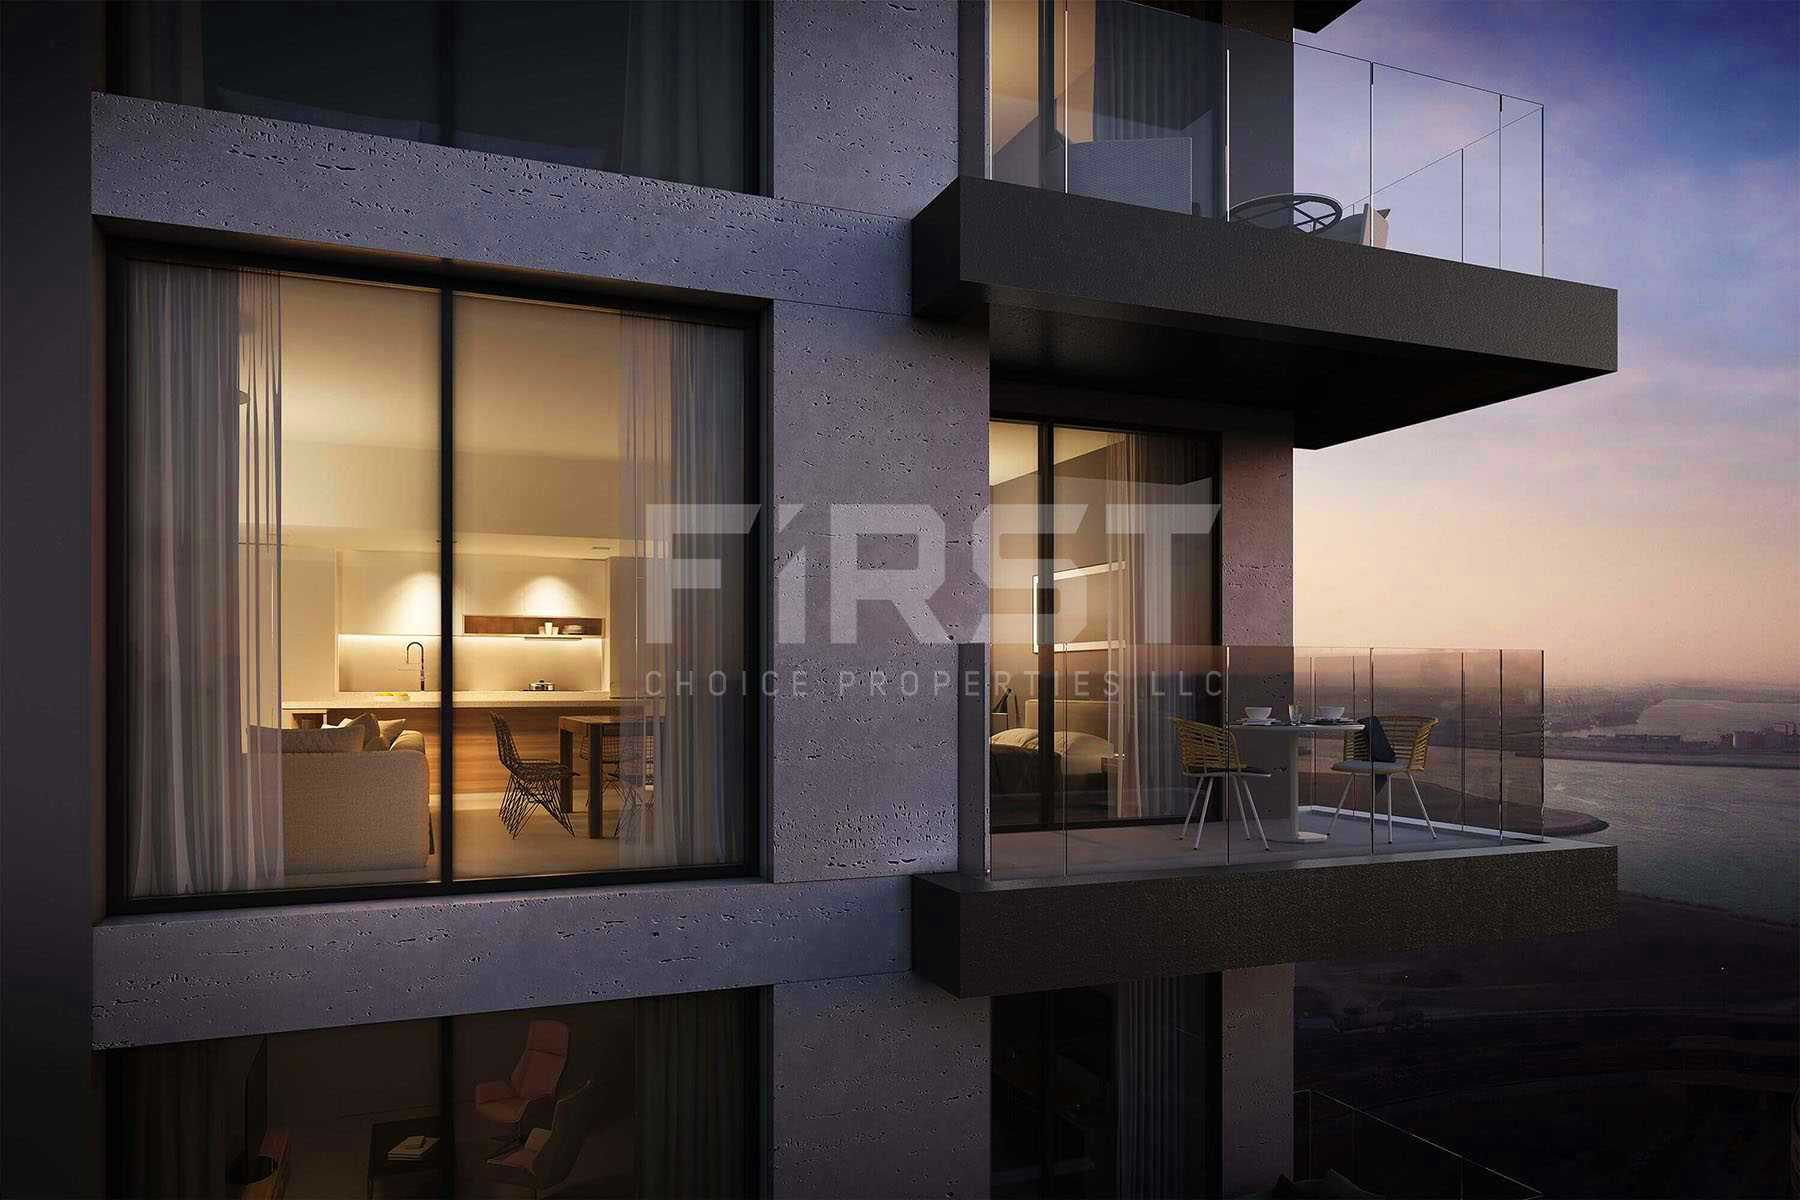 Studio,1 Bedroom, 2 Bedroom, 3 Bedroom,Apartment in The Bridges,Shams Abu Dhabi,Al Reem Island- Abu Dhabi-UAE (13).jpg